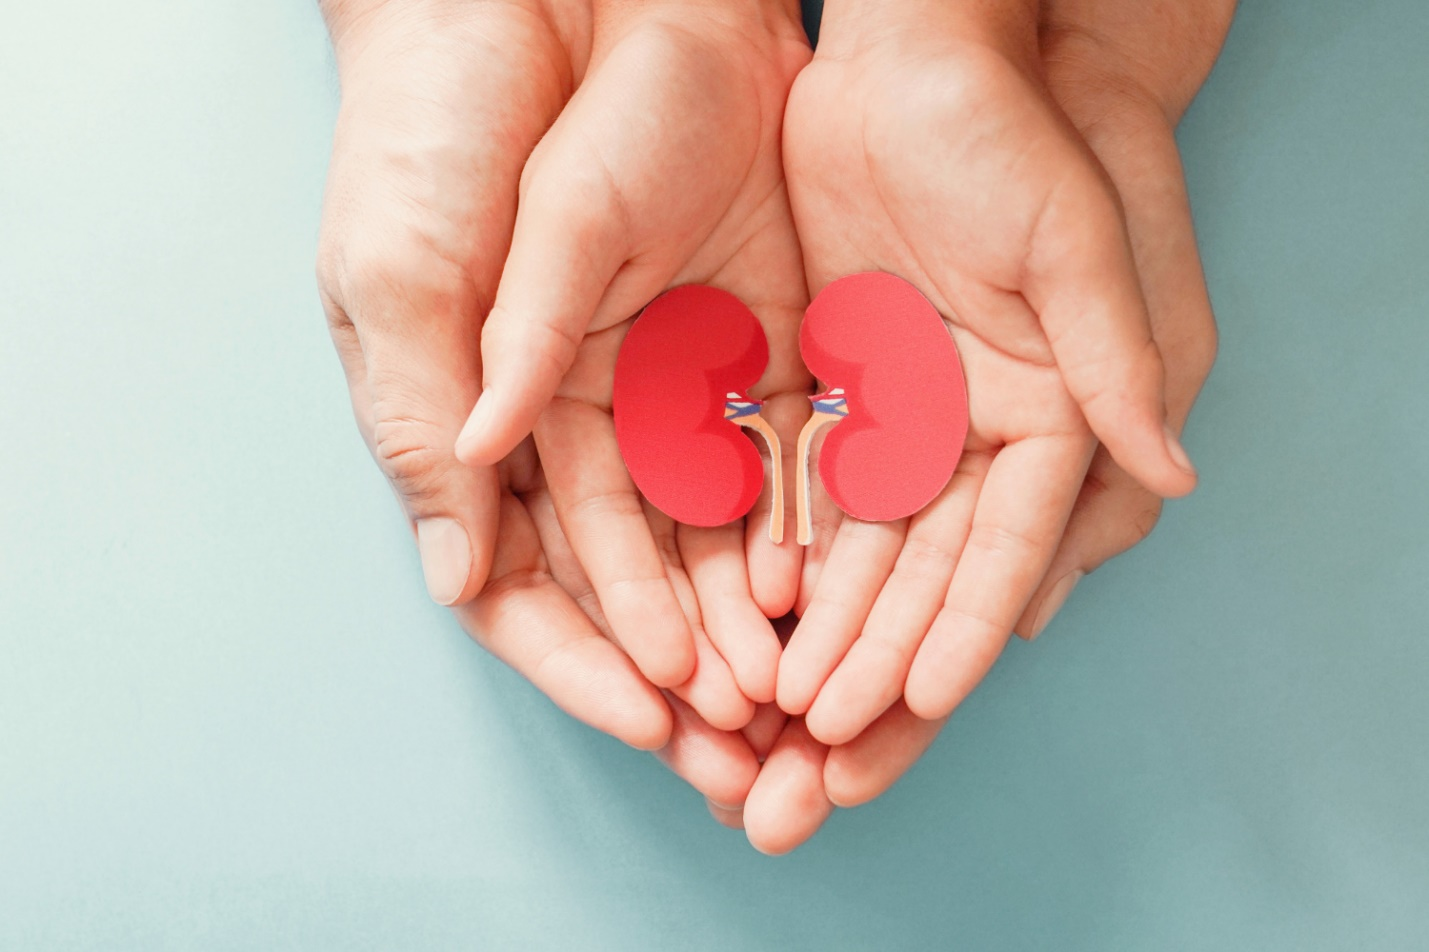 C:\Users\Dell\Downloads\adult-child-holding-kidney-shaped-paper-world-kidney-day-national-organ-donor-day-charity-donation-concept.jpg